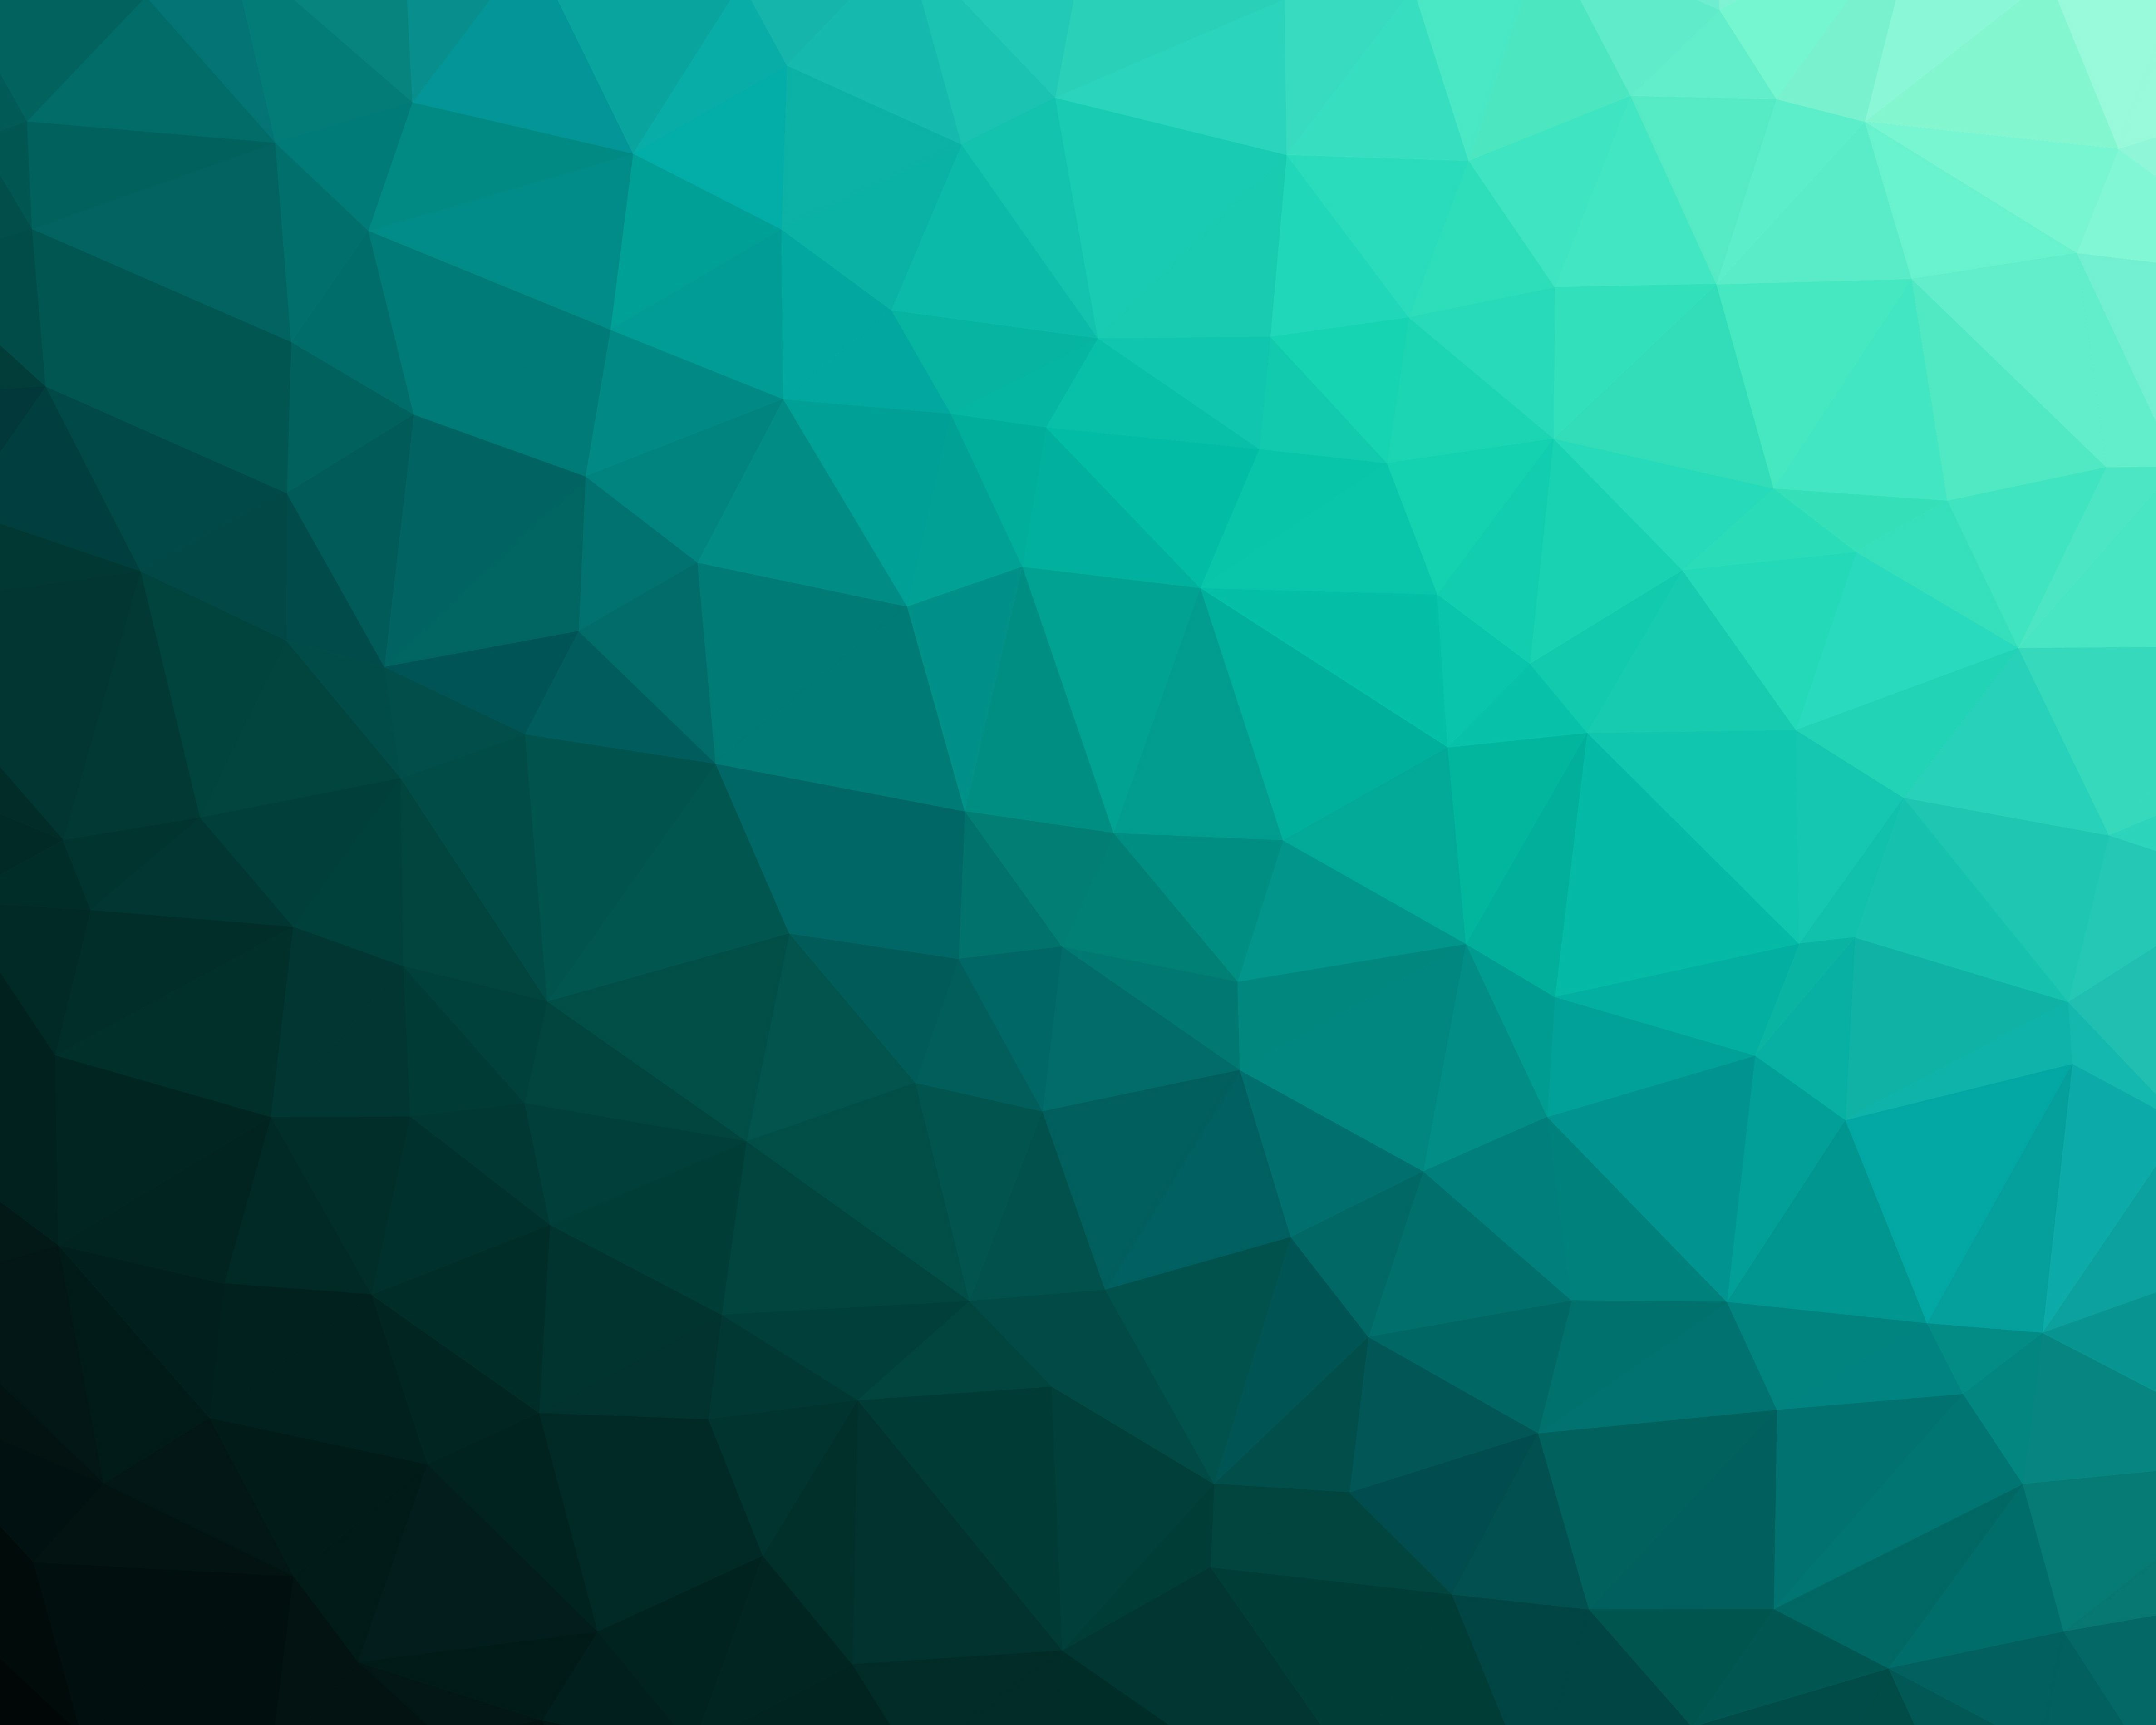 White Gold Wallpaper Hd Free Picture Geometric Shape Green Abstract Futuristic